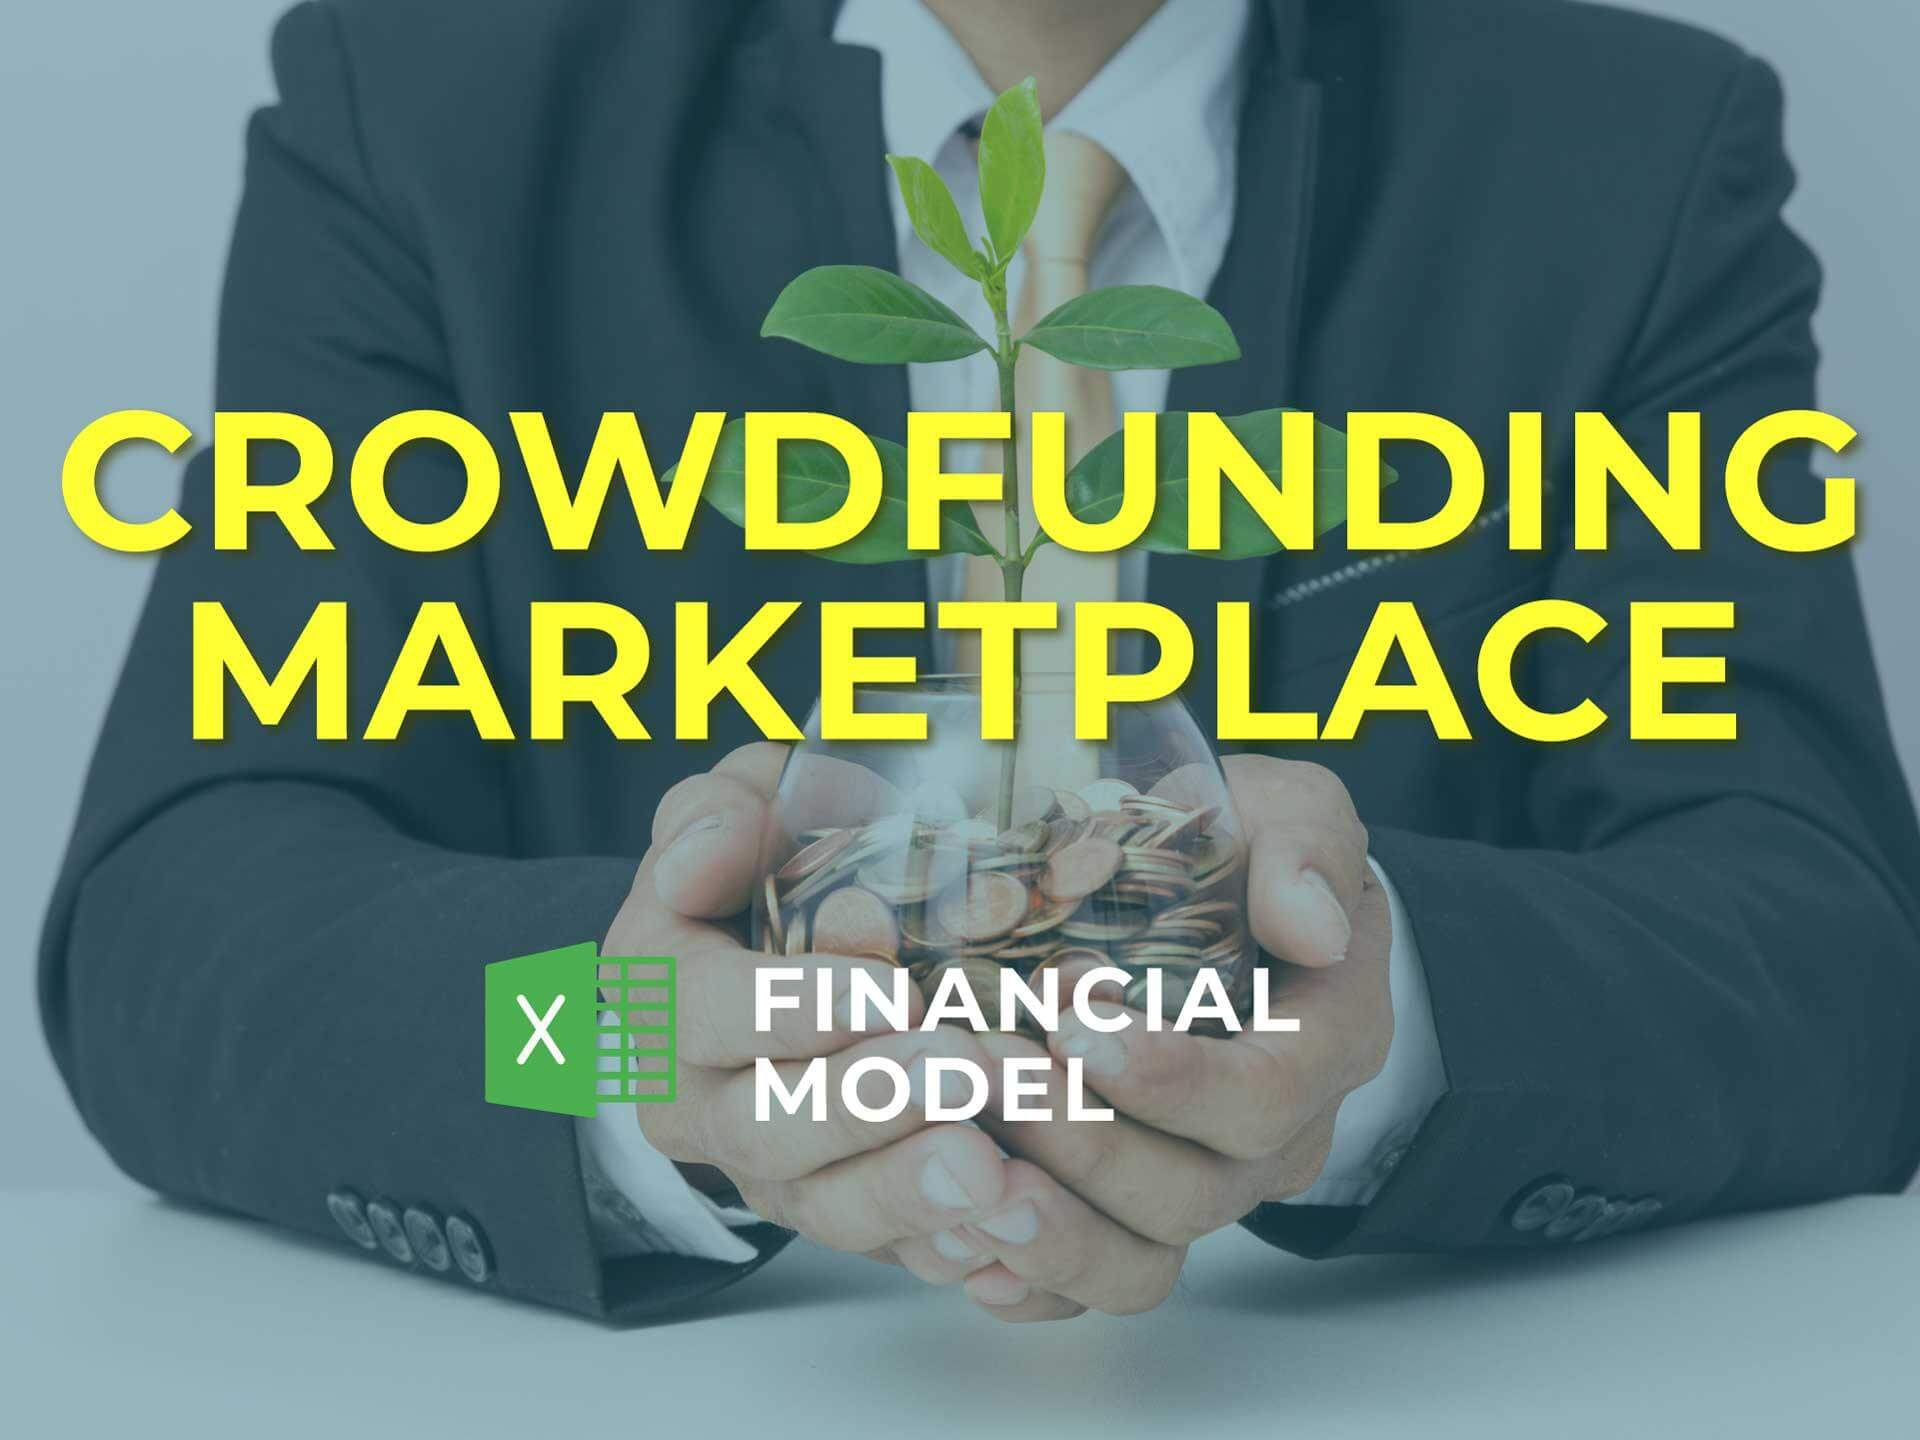 Crowdfunding Marketplace Financial Model Excel Template - Templarket -  Business Templates Marketplace